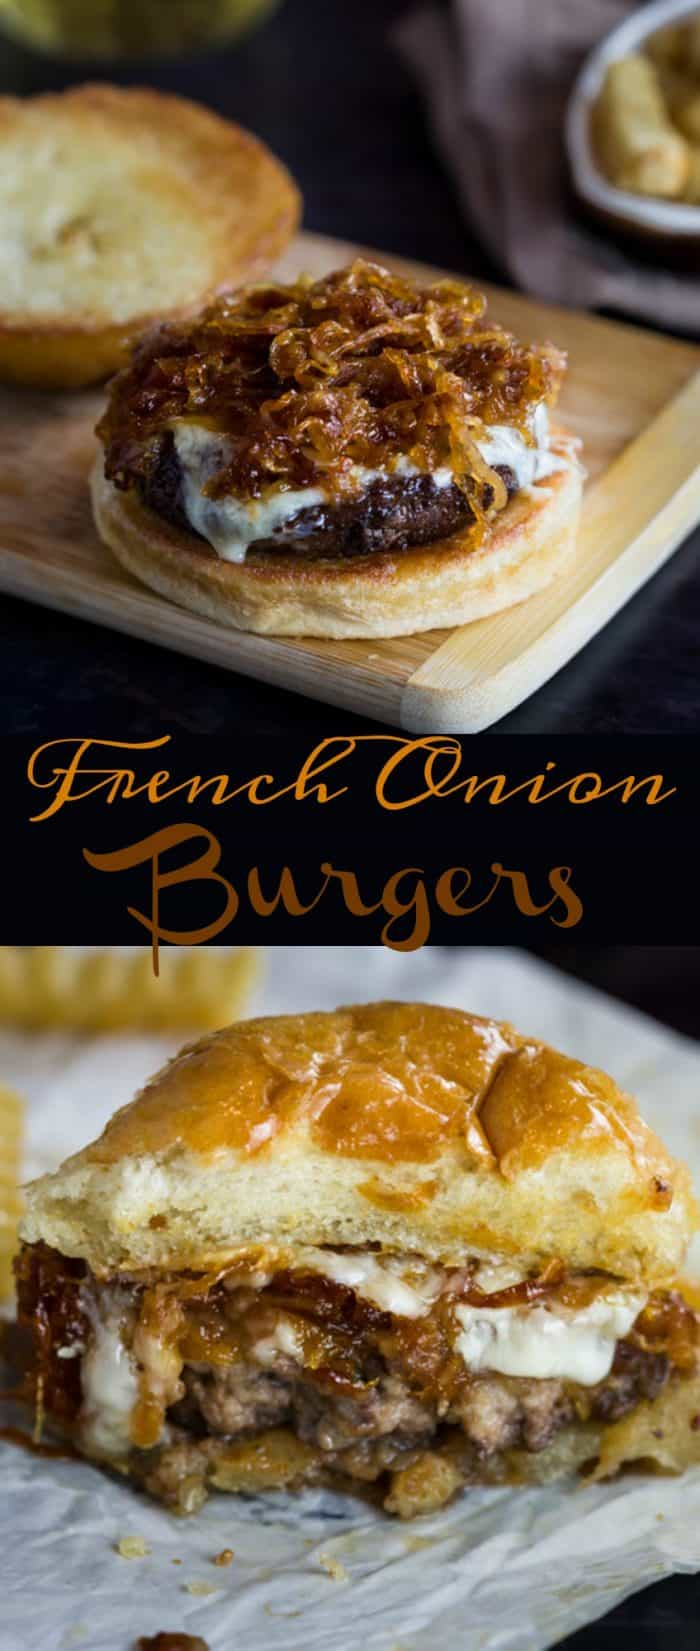 These extra juicy, perfectly cooked burgers are topped with melted Gruyere cheese, caramelized onions, and are served over golden burger buns. #burger #dinner #meat #beef #groundbeef #burgers #onions #recipe #easyrecipes #comfortfood